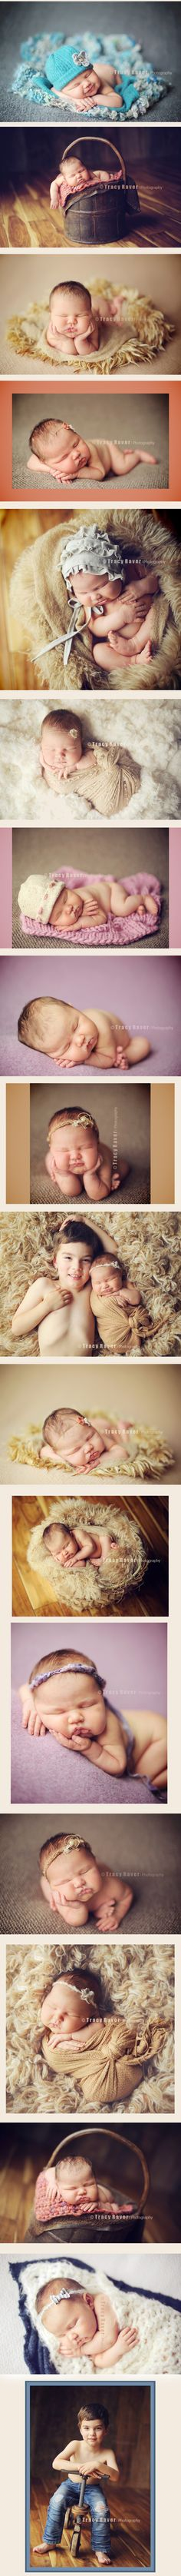 Seriously STUNNING posed newborn photography by Kelley Ryden. Colors, textures, poses ... so much variety and beauty in all of her sessions. Love.